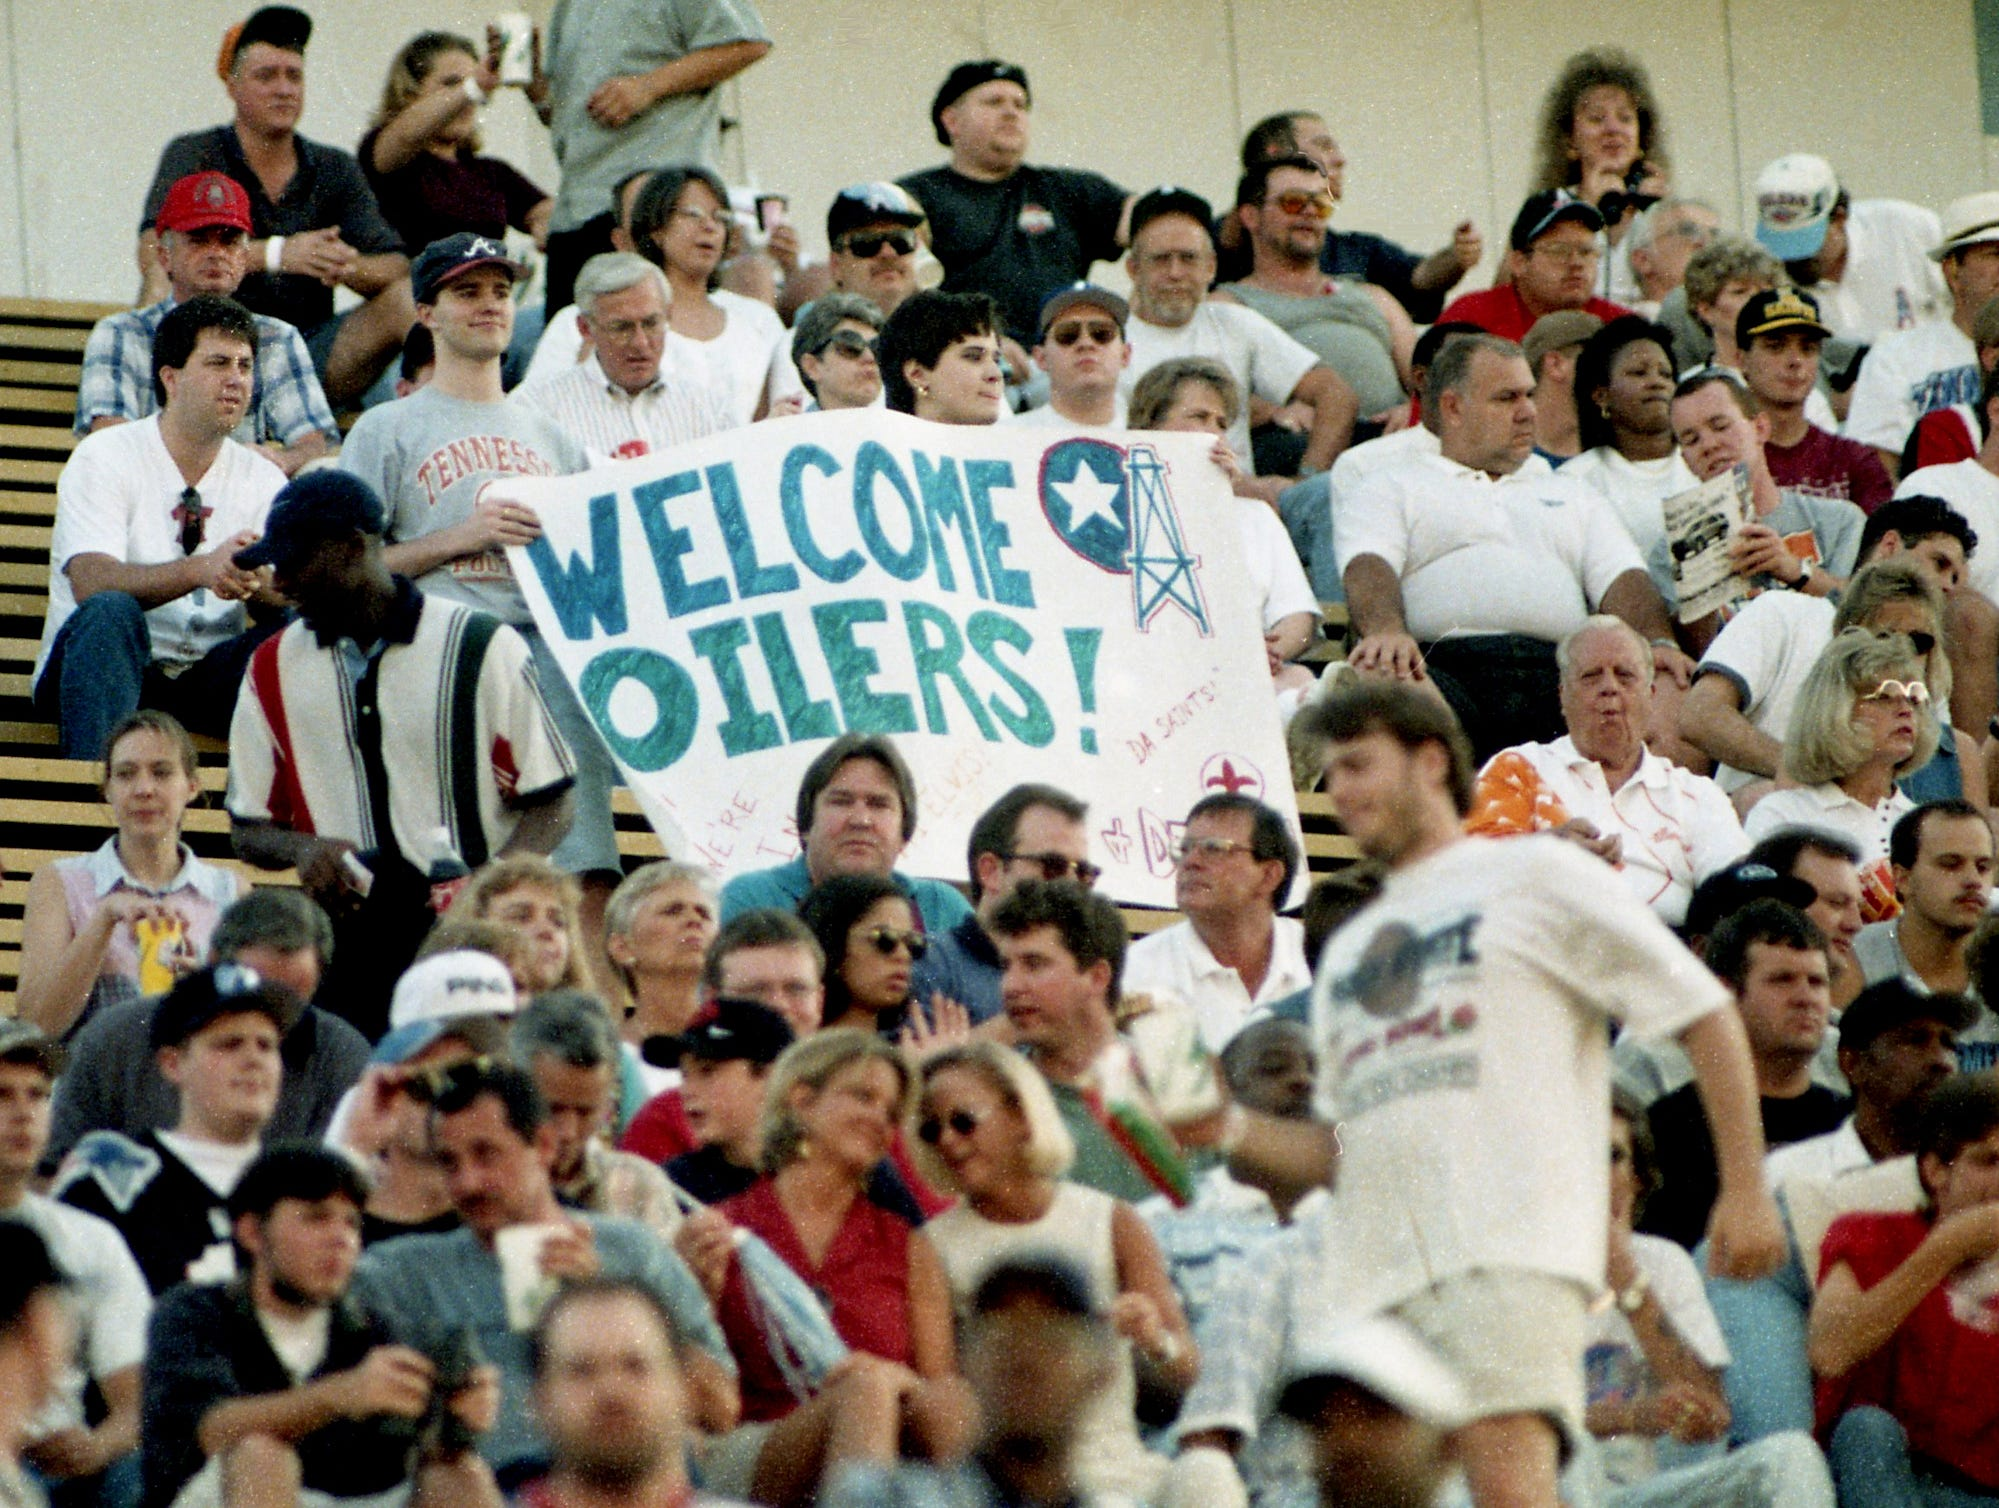 Tennessee Oilers fans welcome their team to Memphis' Liberty Bowl for their very first game in their new state and their temporary home Aug. 2, 1997. The Oilers face the New Orleans Saints in the pre-season game.